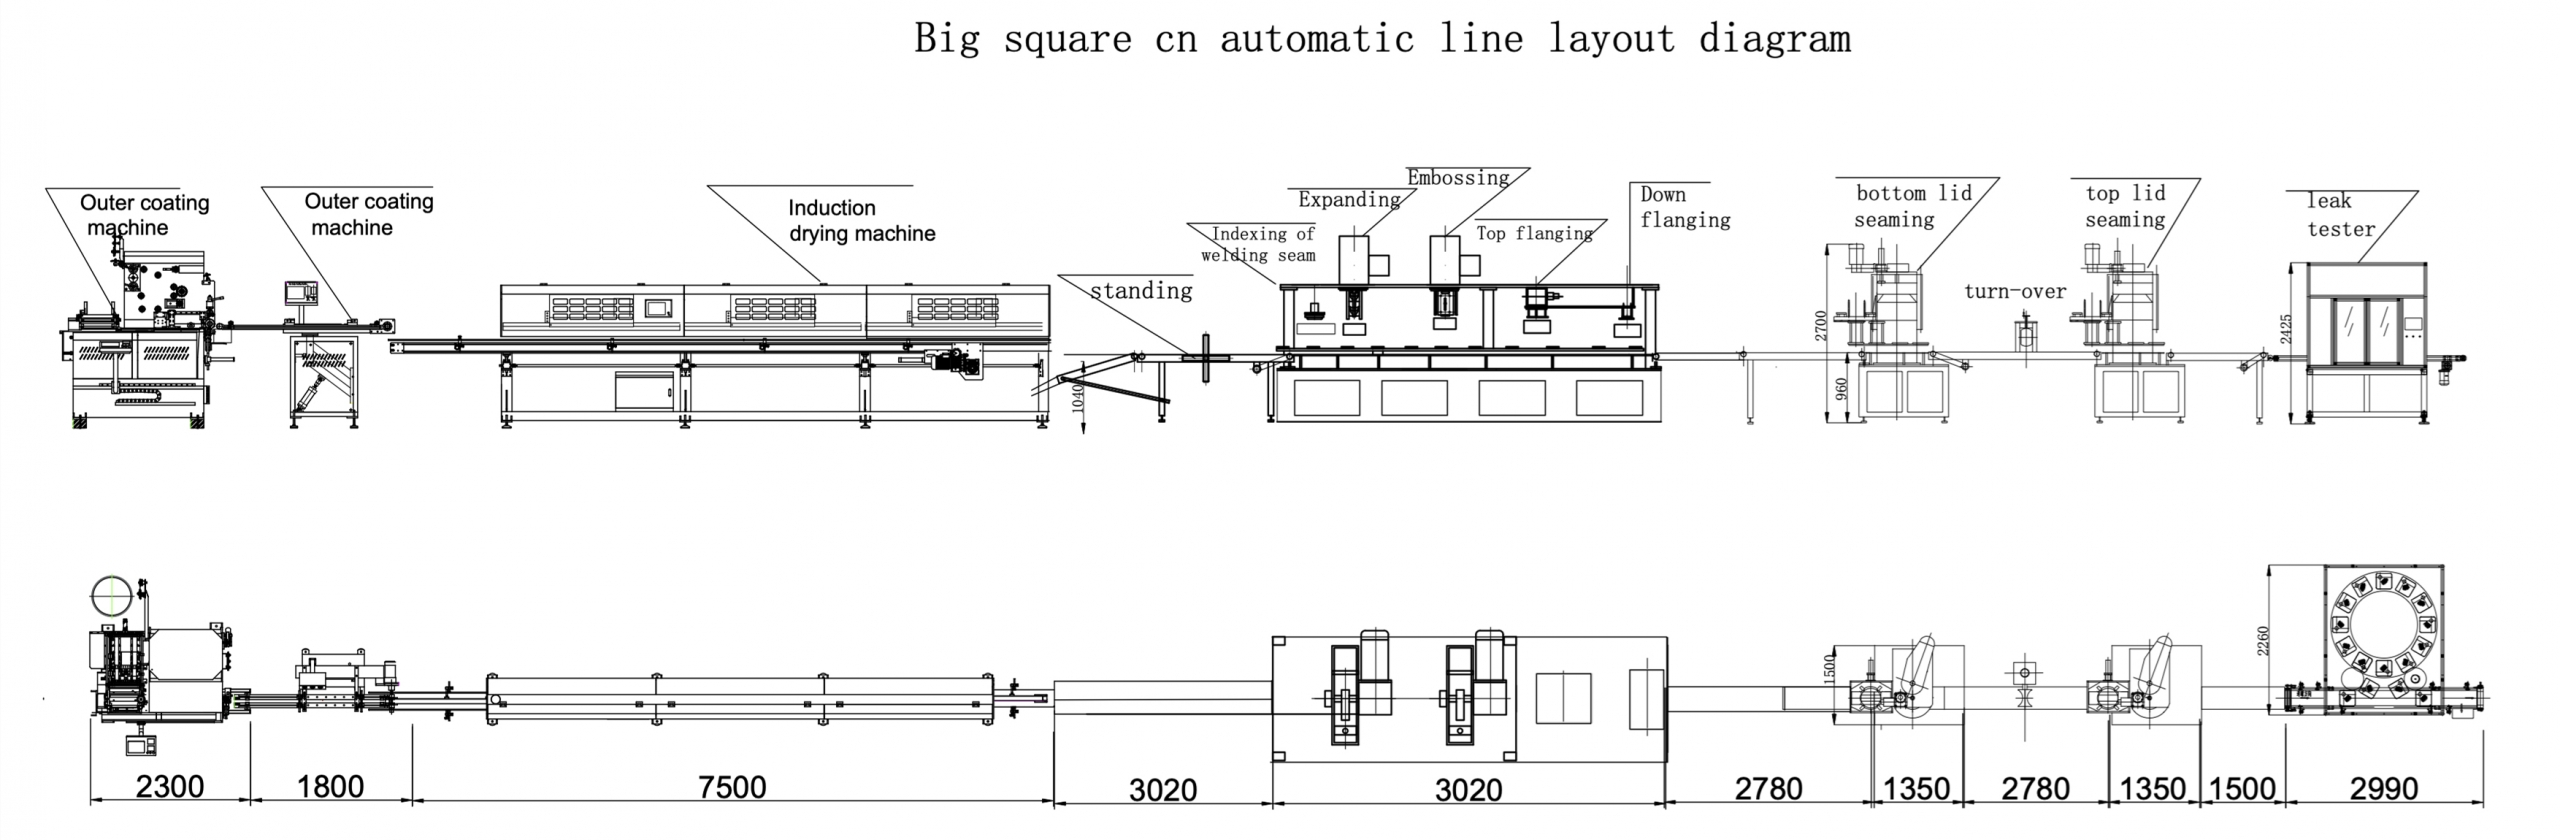 The layout of the production line